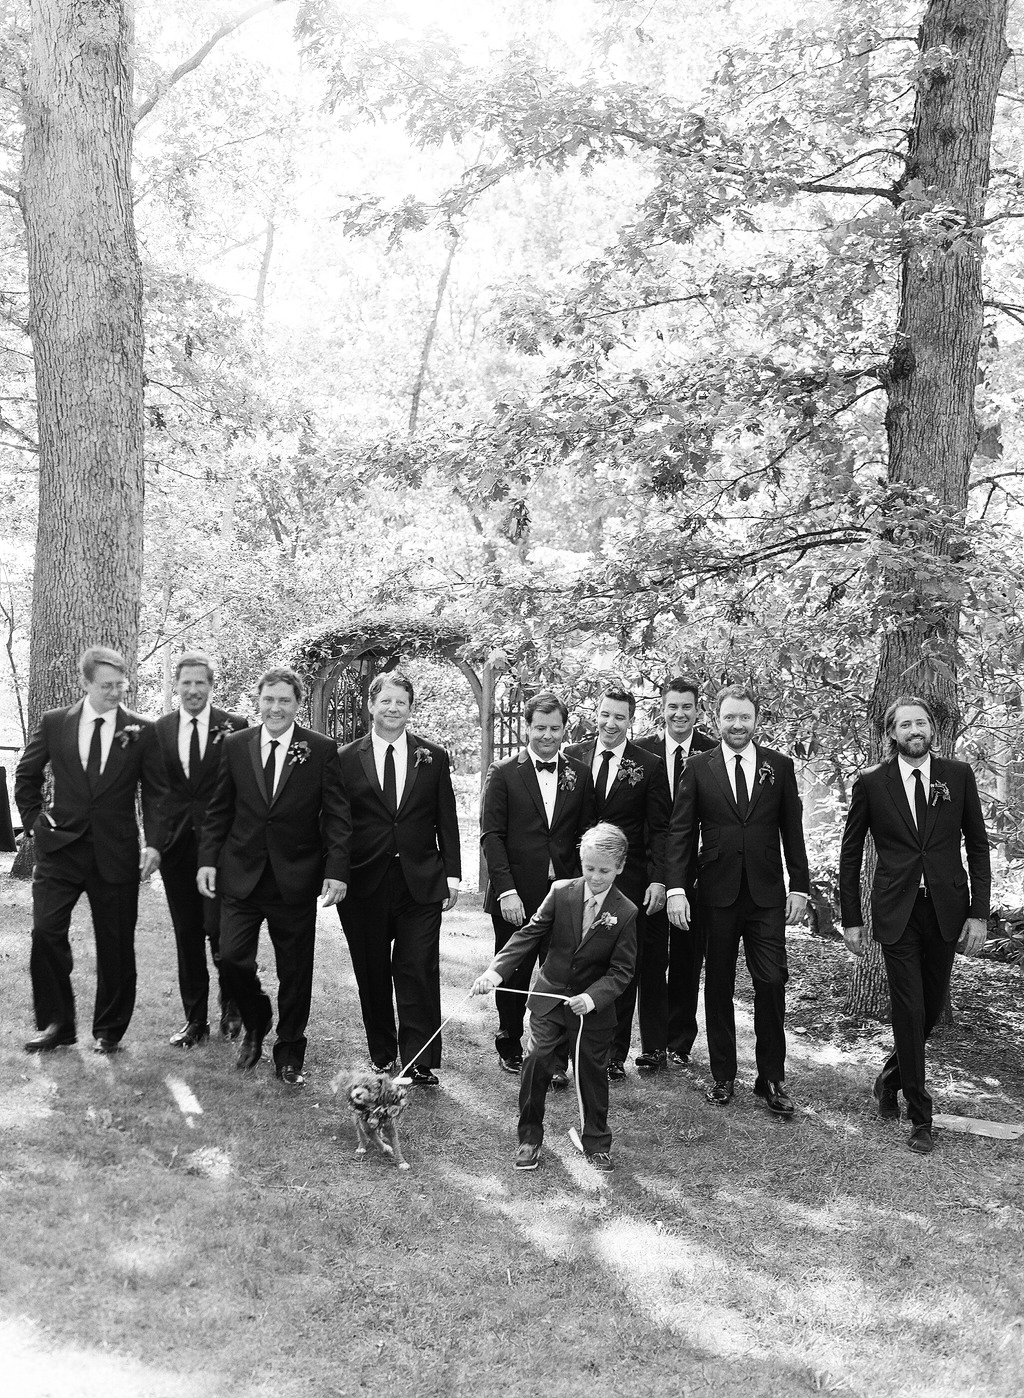 All the Groom's Men